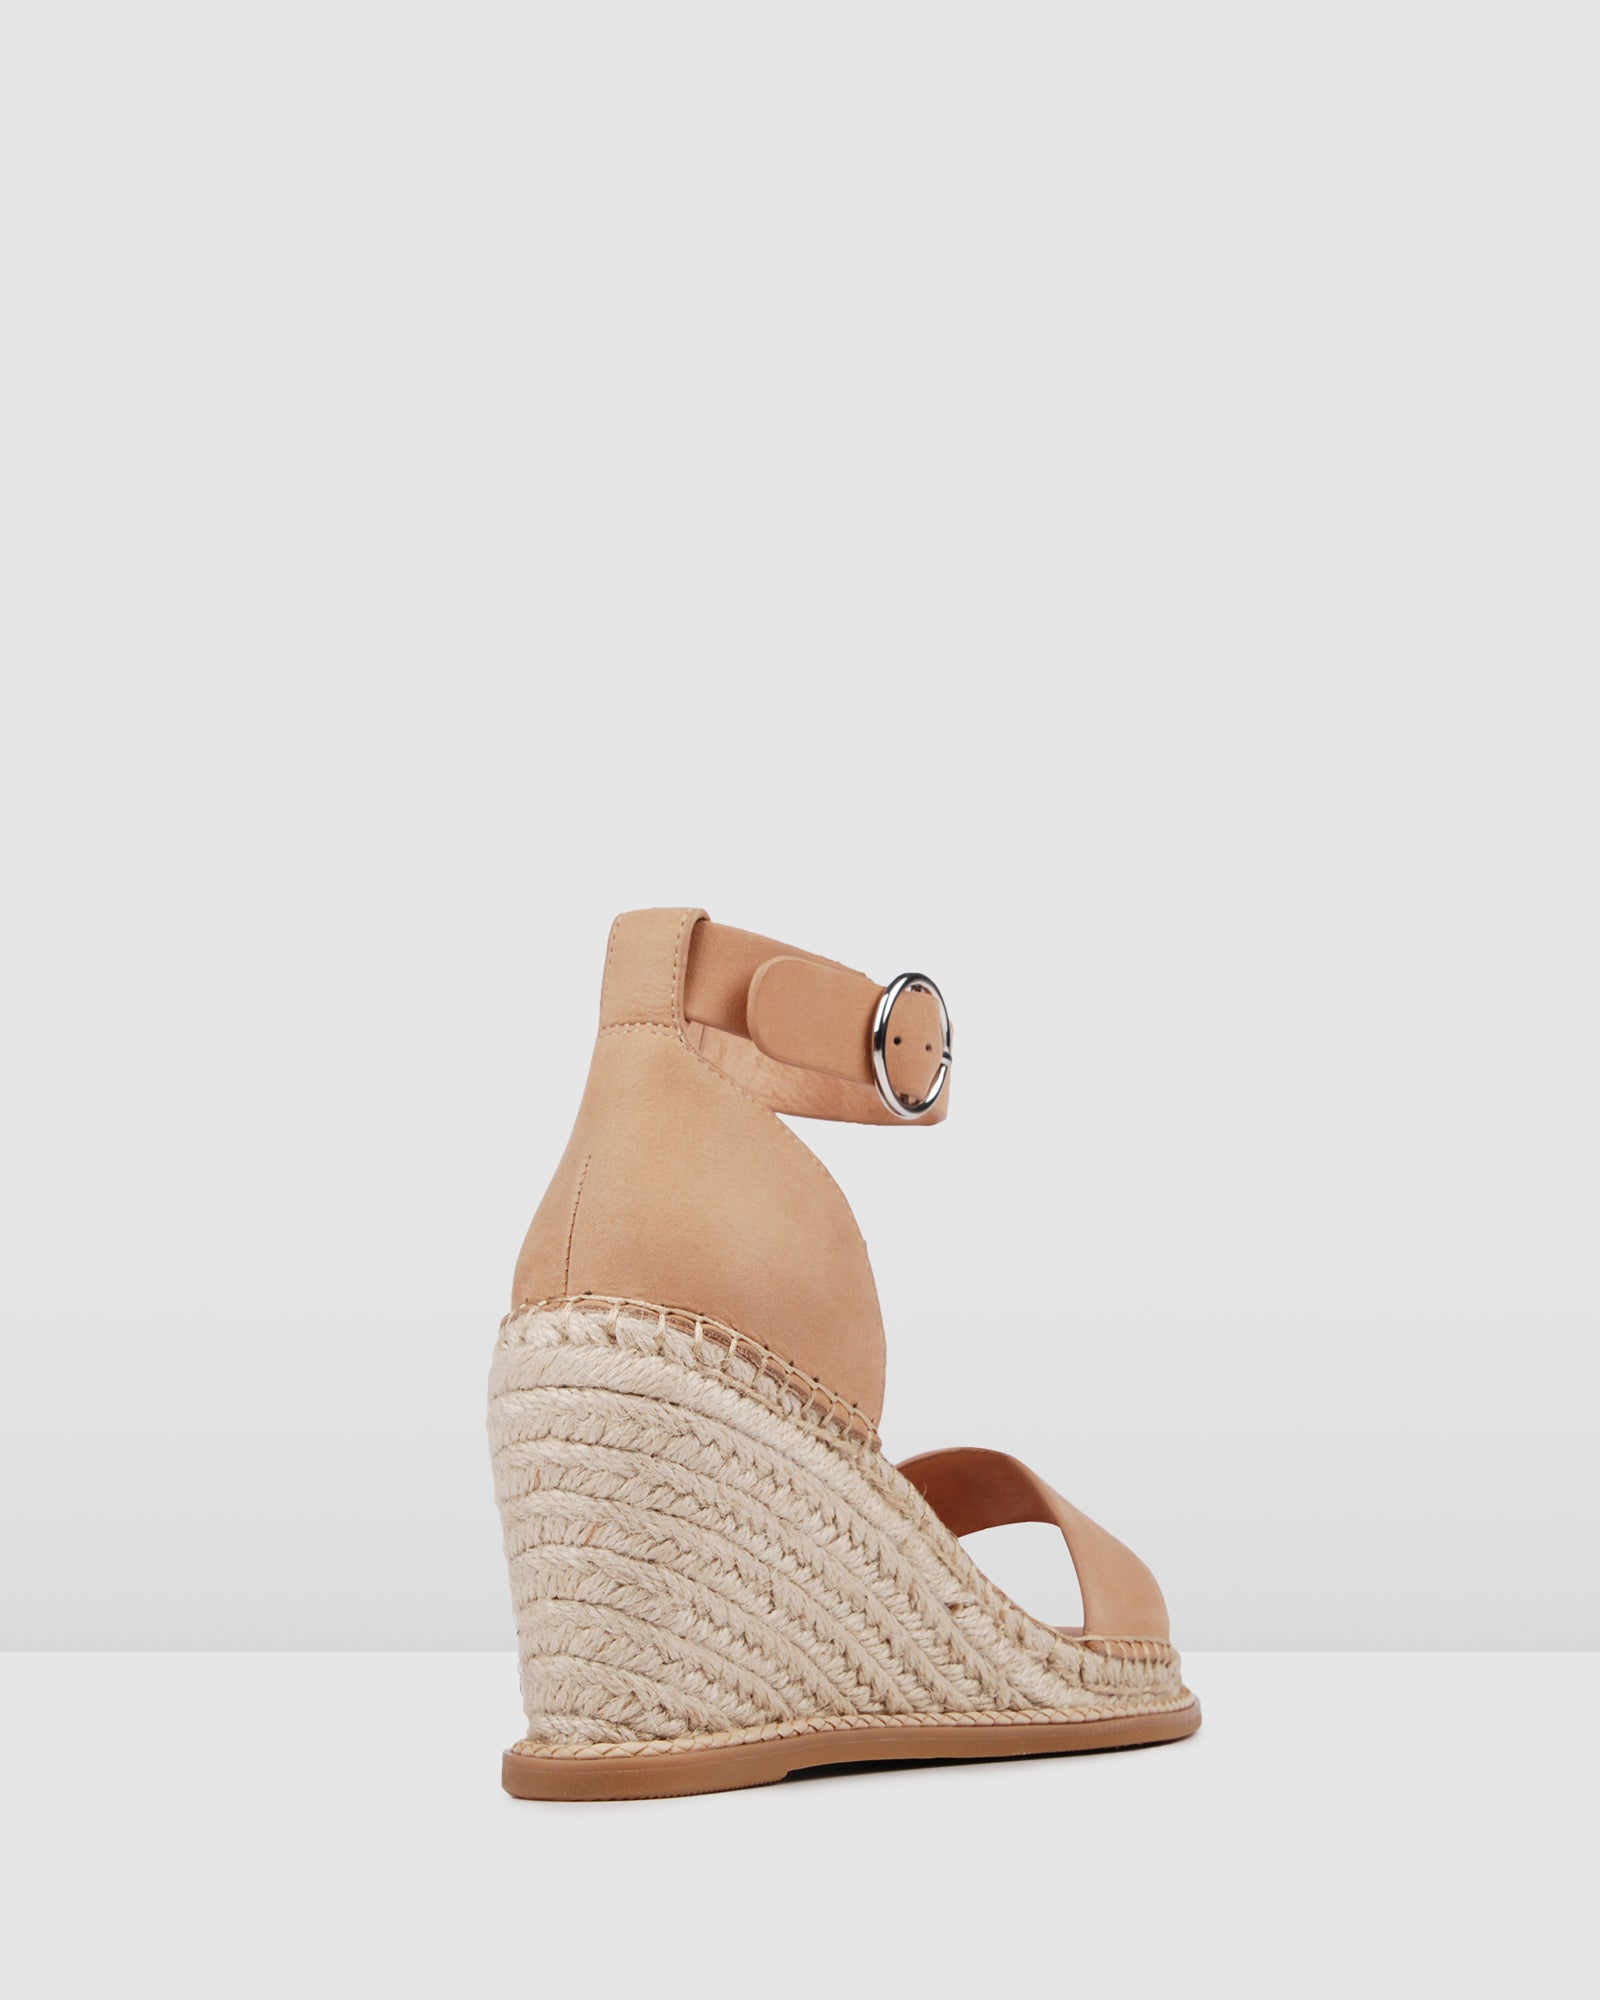 MARGOT HIGH HEEL WEDGE ESPADRILLES NATURAL LEATHER